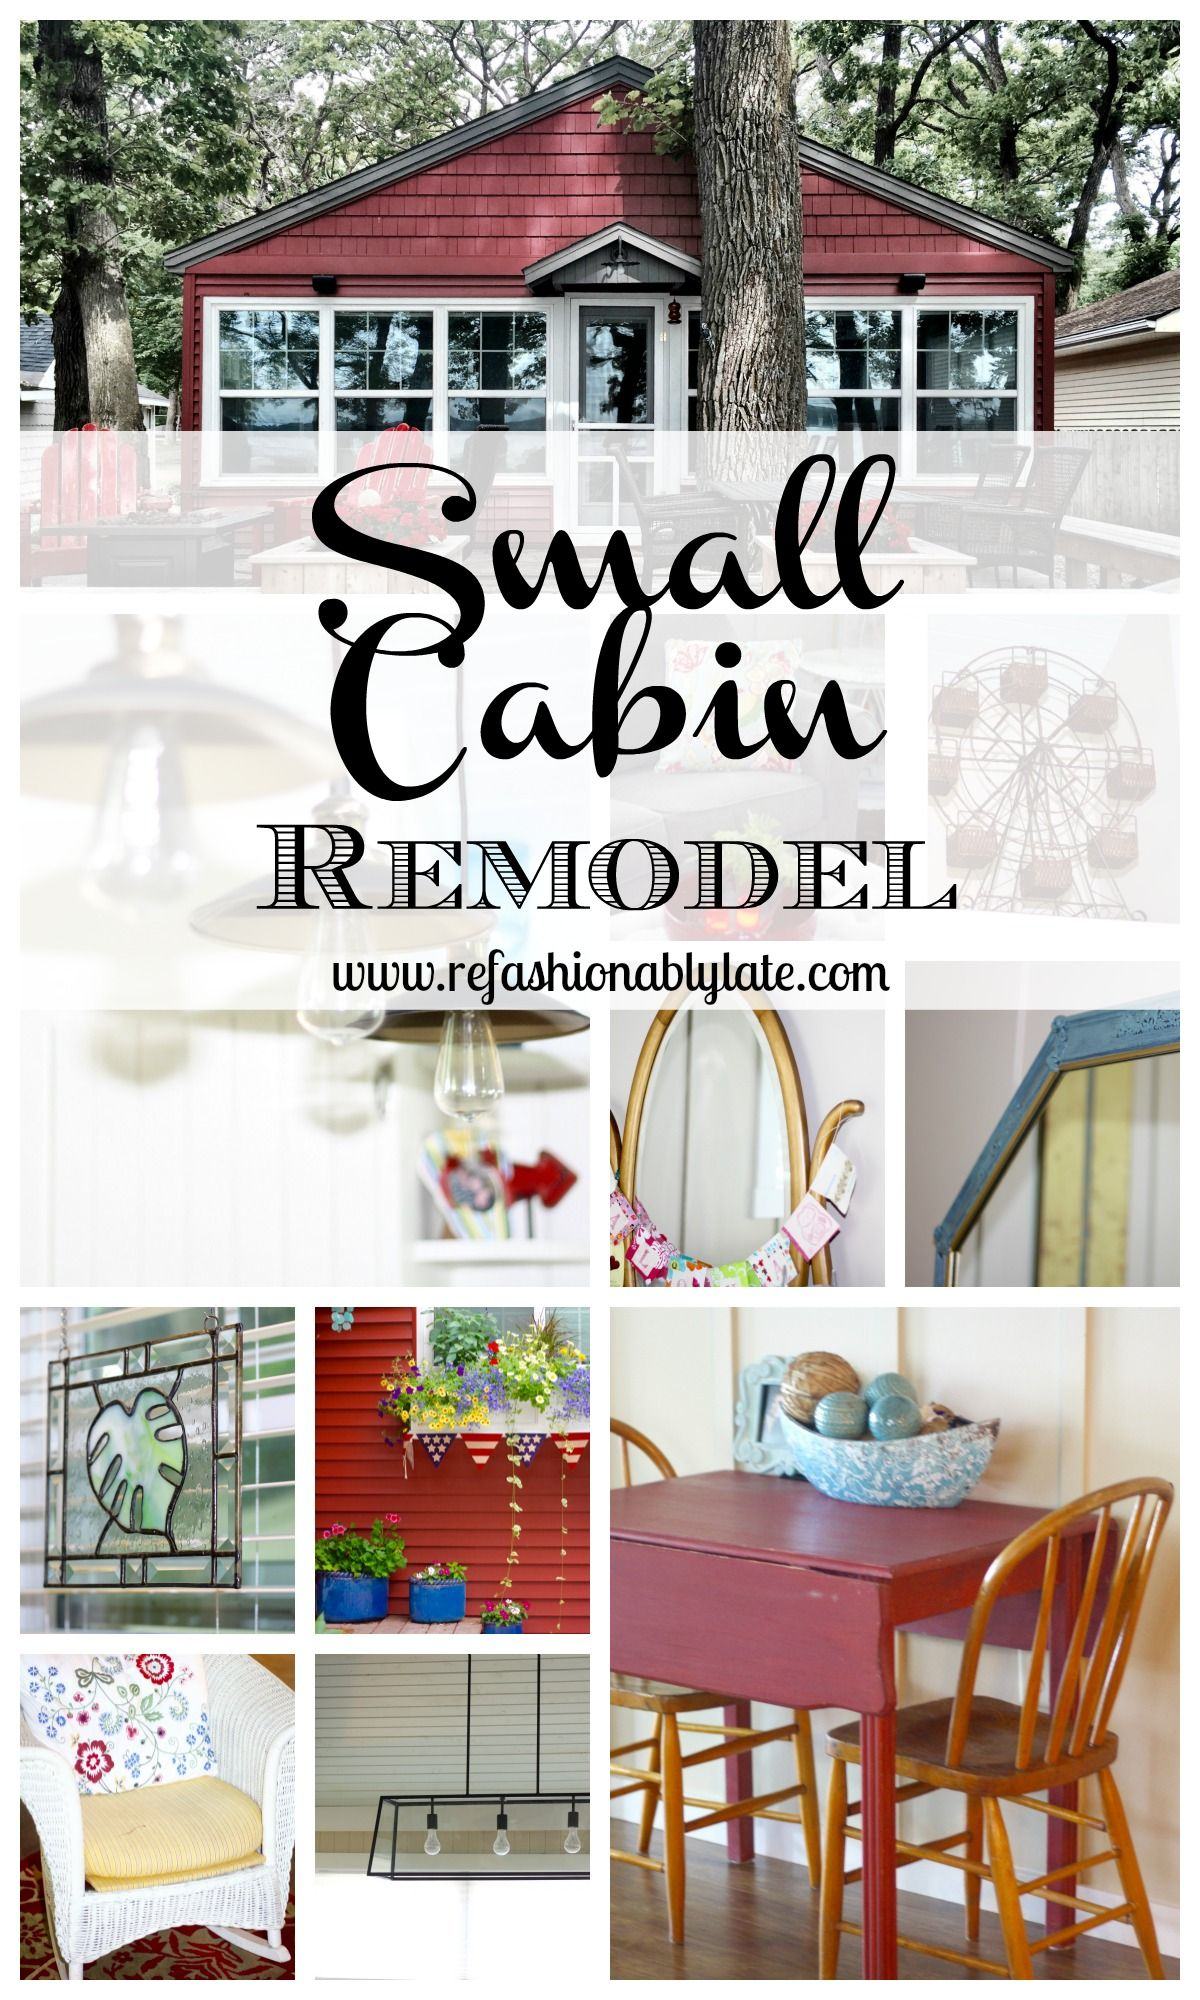 Small cabin ideas pictures remodel and decor - Small Cabin Remodel